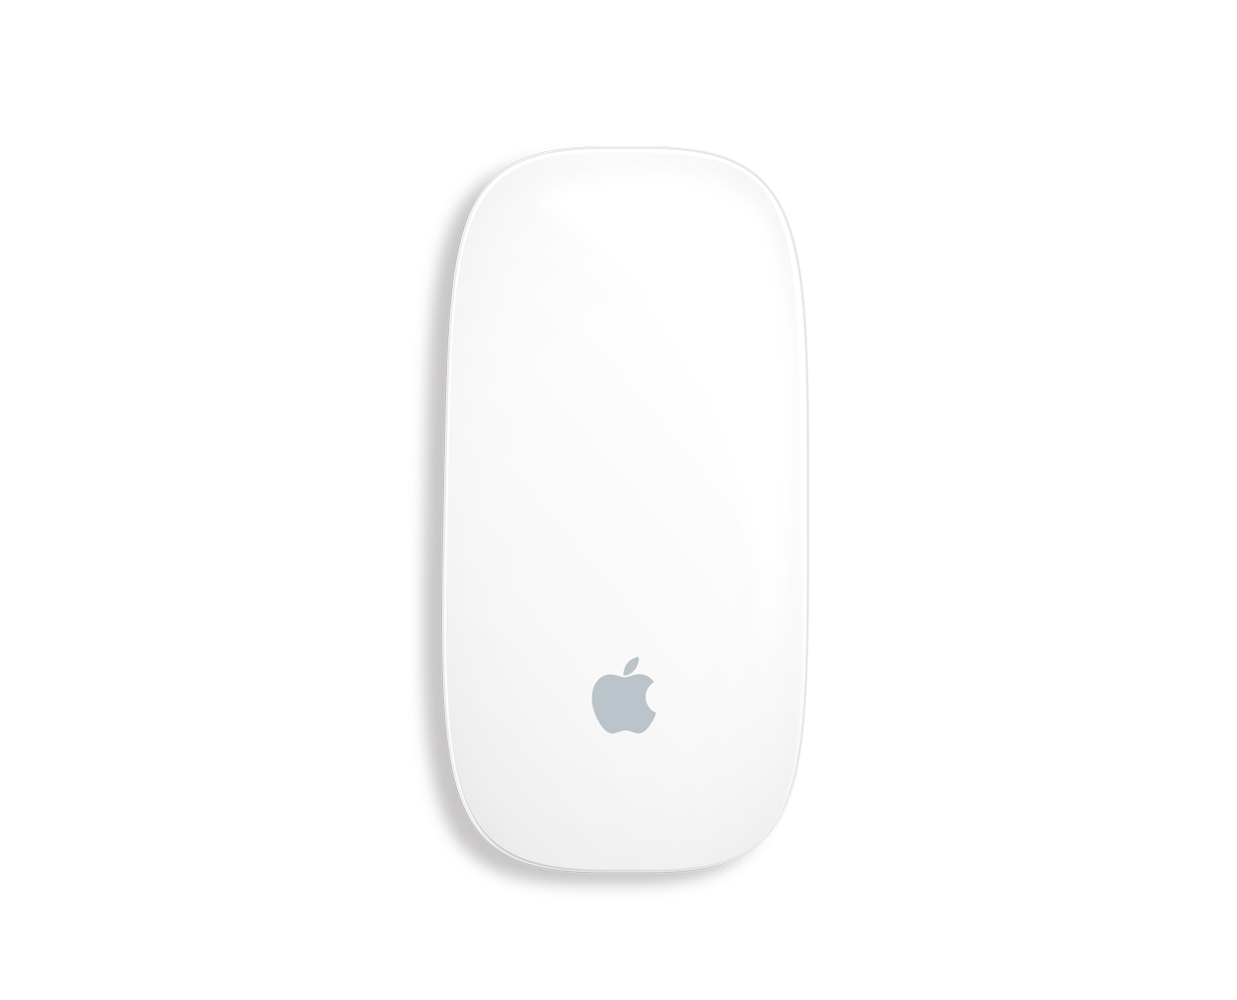 Периферия: Magic Mouse, фотография №1